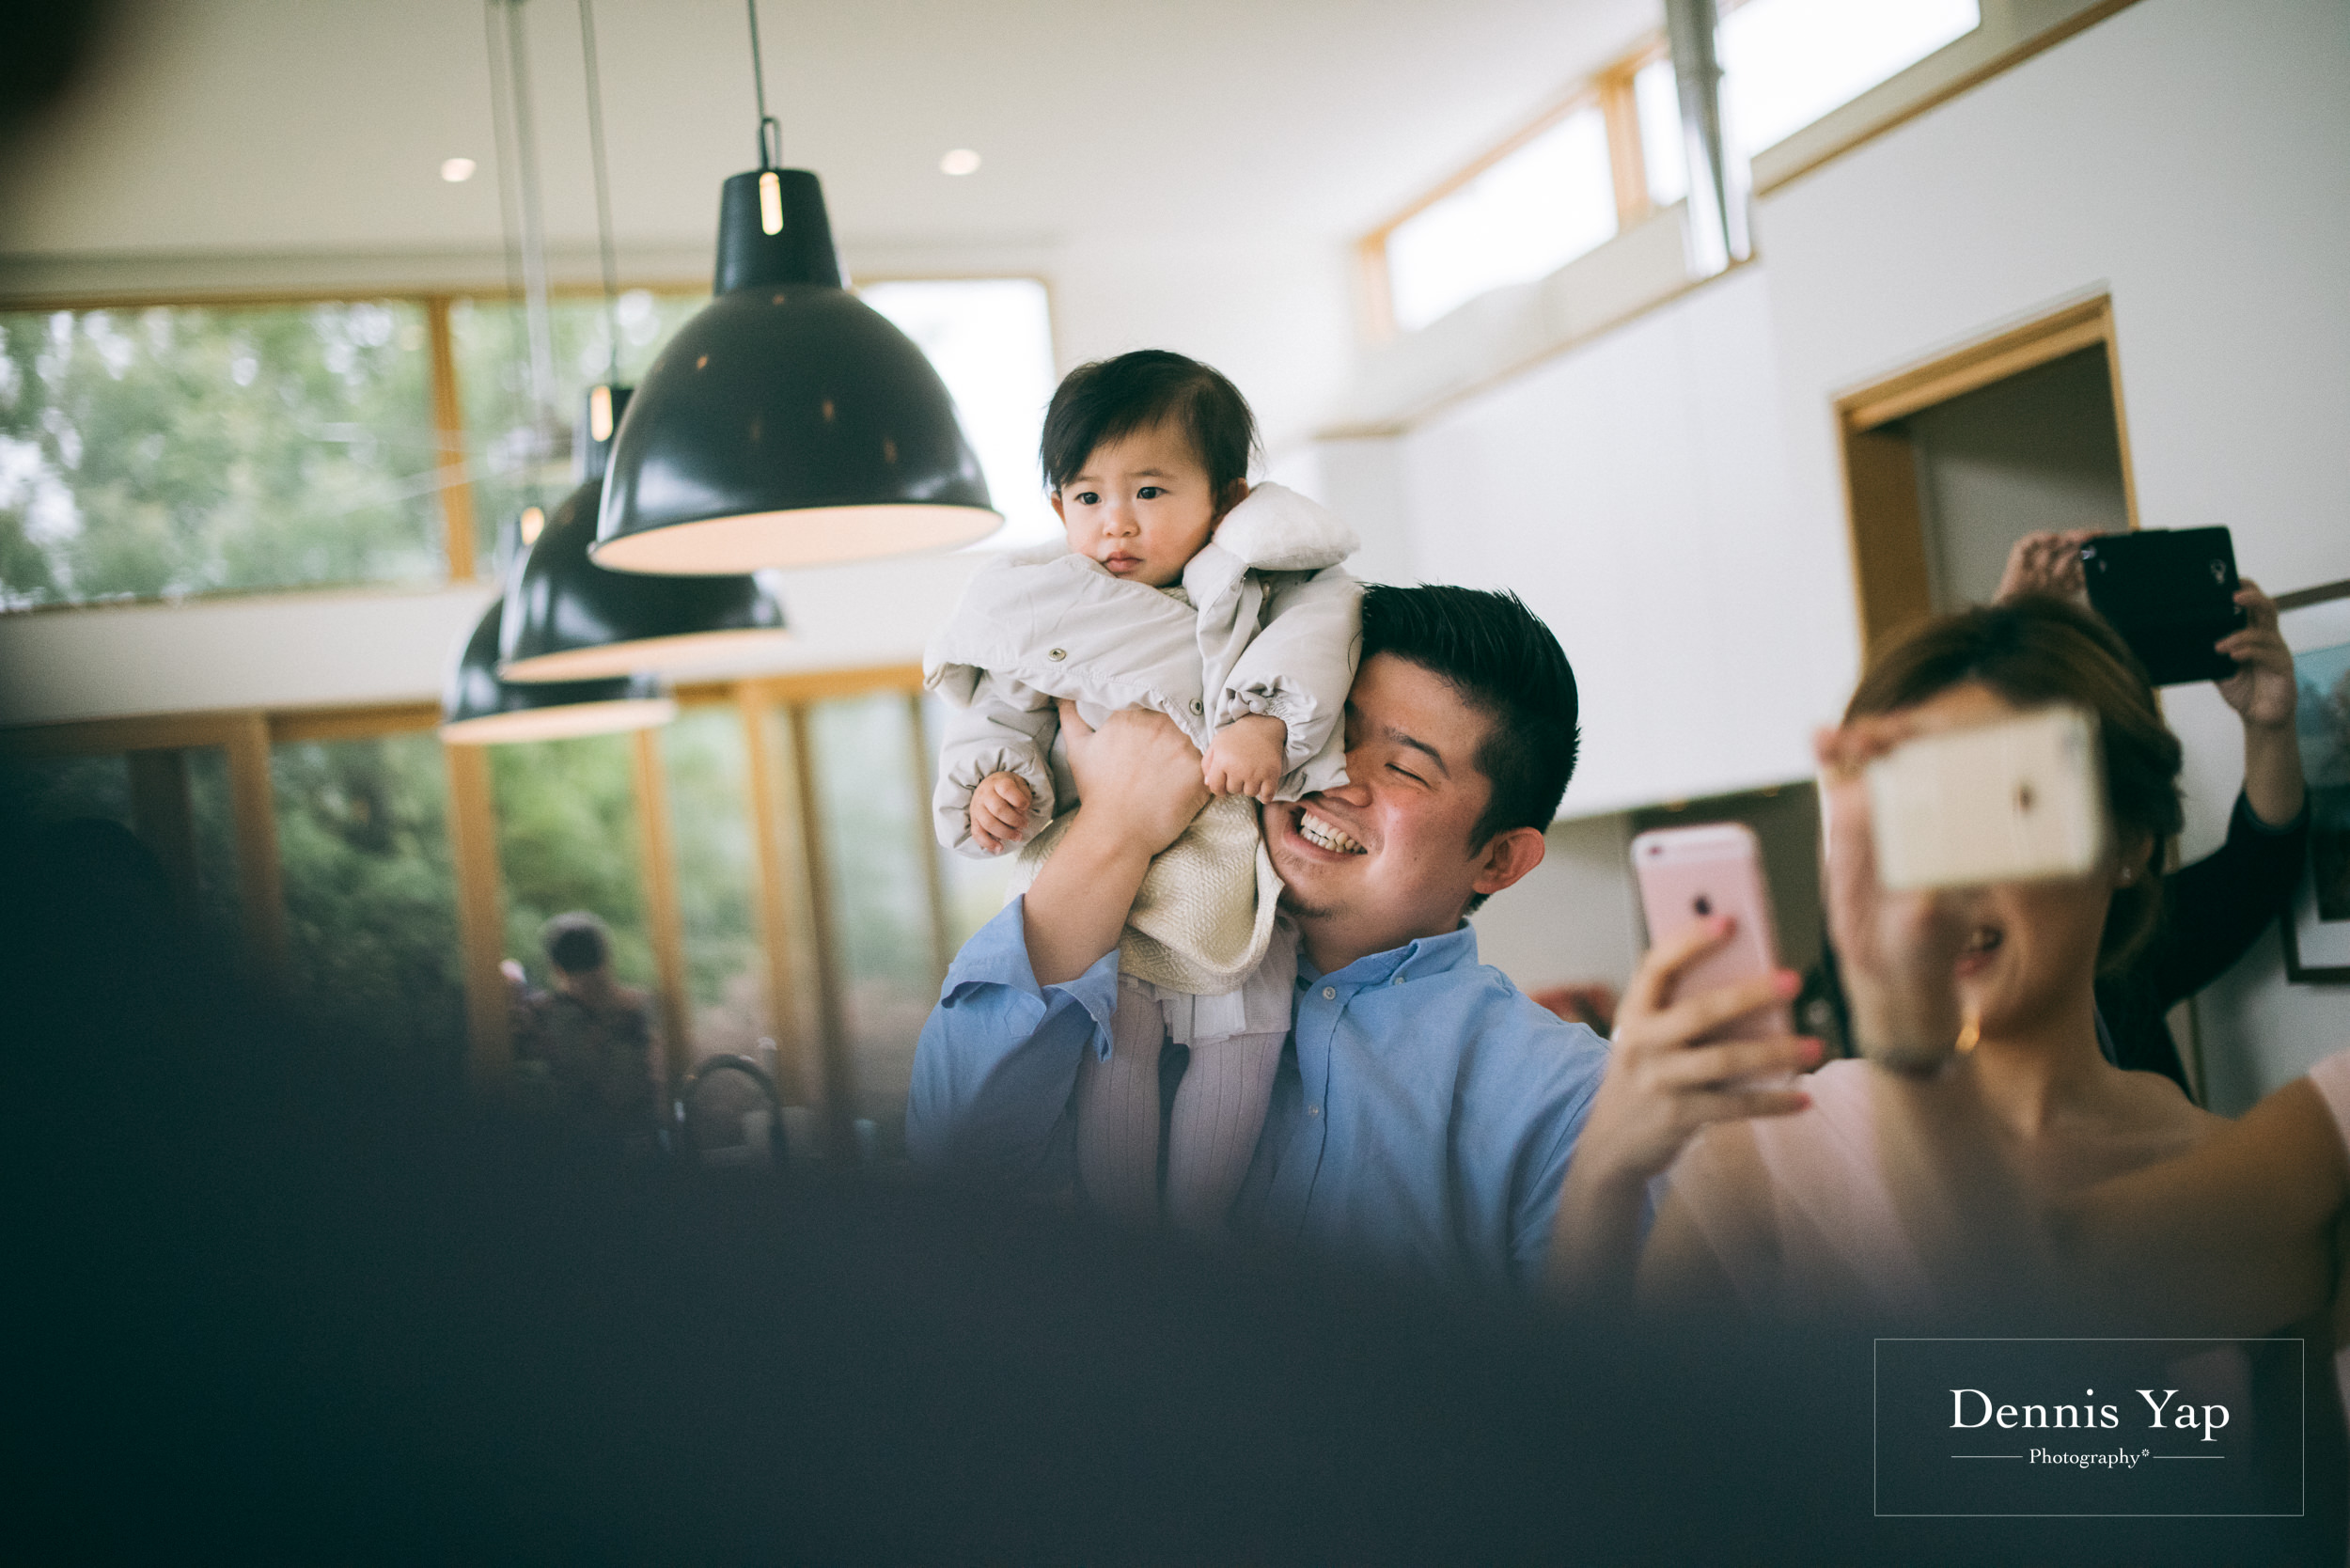 tony daphne wedding day melbourne RACV dennis yap photography malaysia top photographer beloved real moments-15.jpg